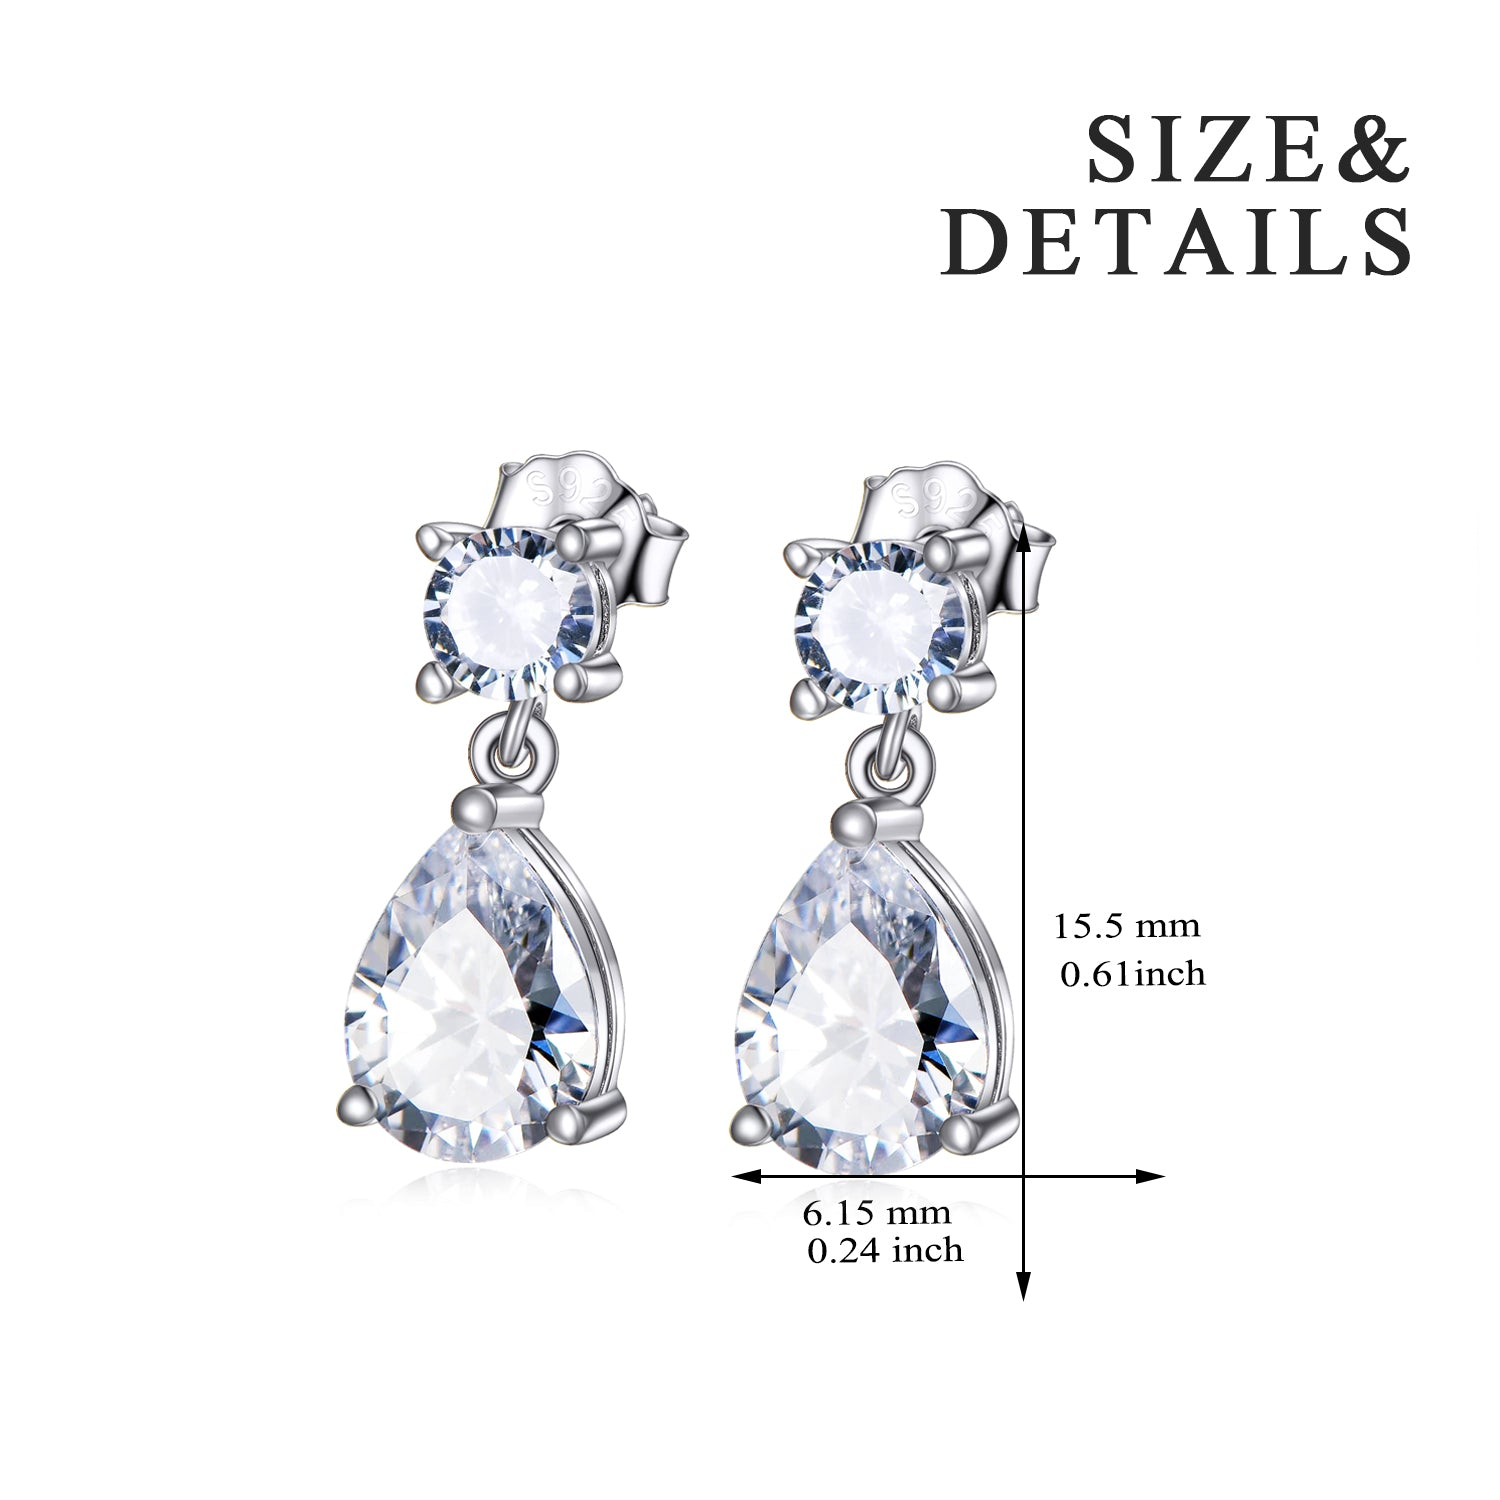 Newest Hot Selling Fashion Water Drop Earring for Women and Girls